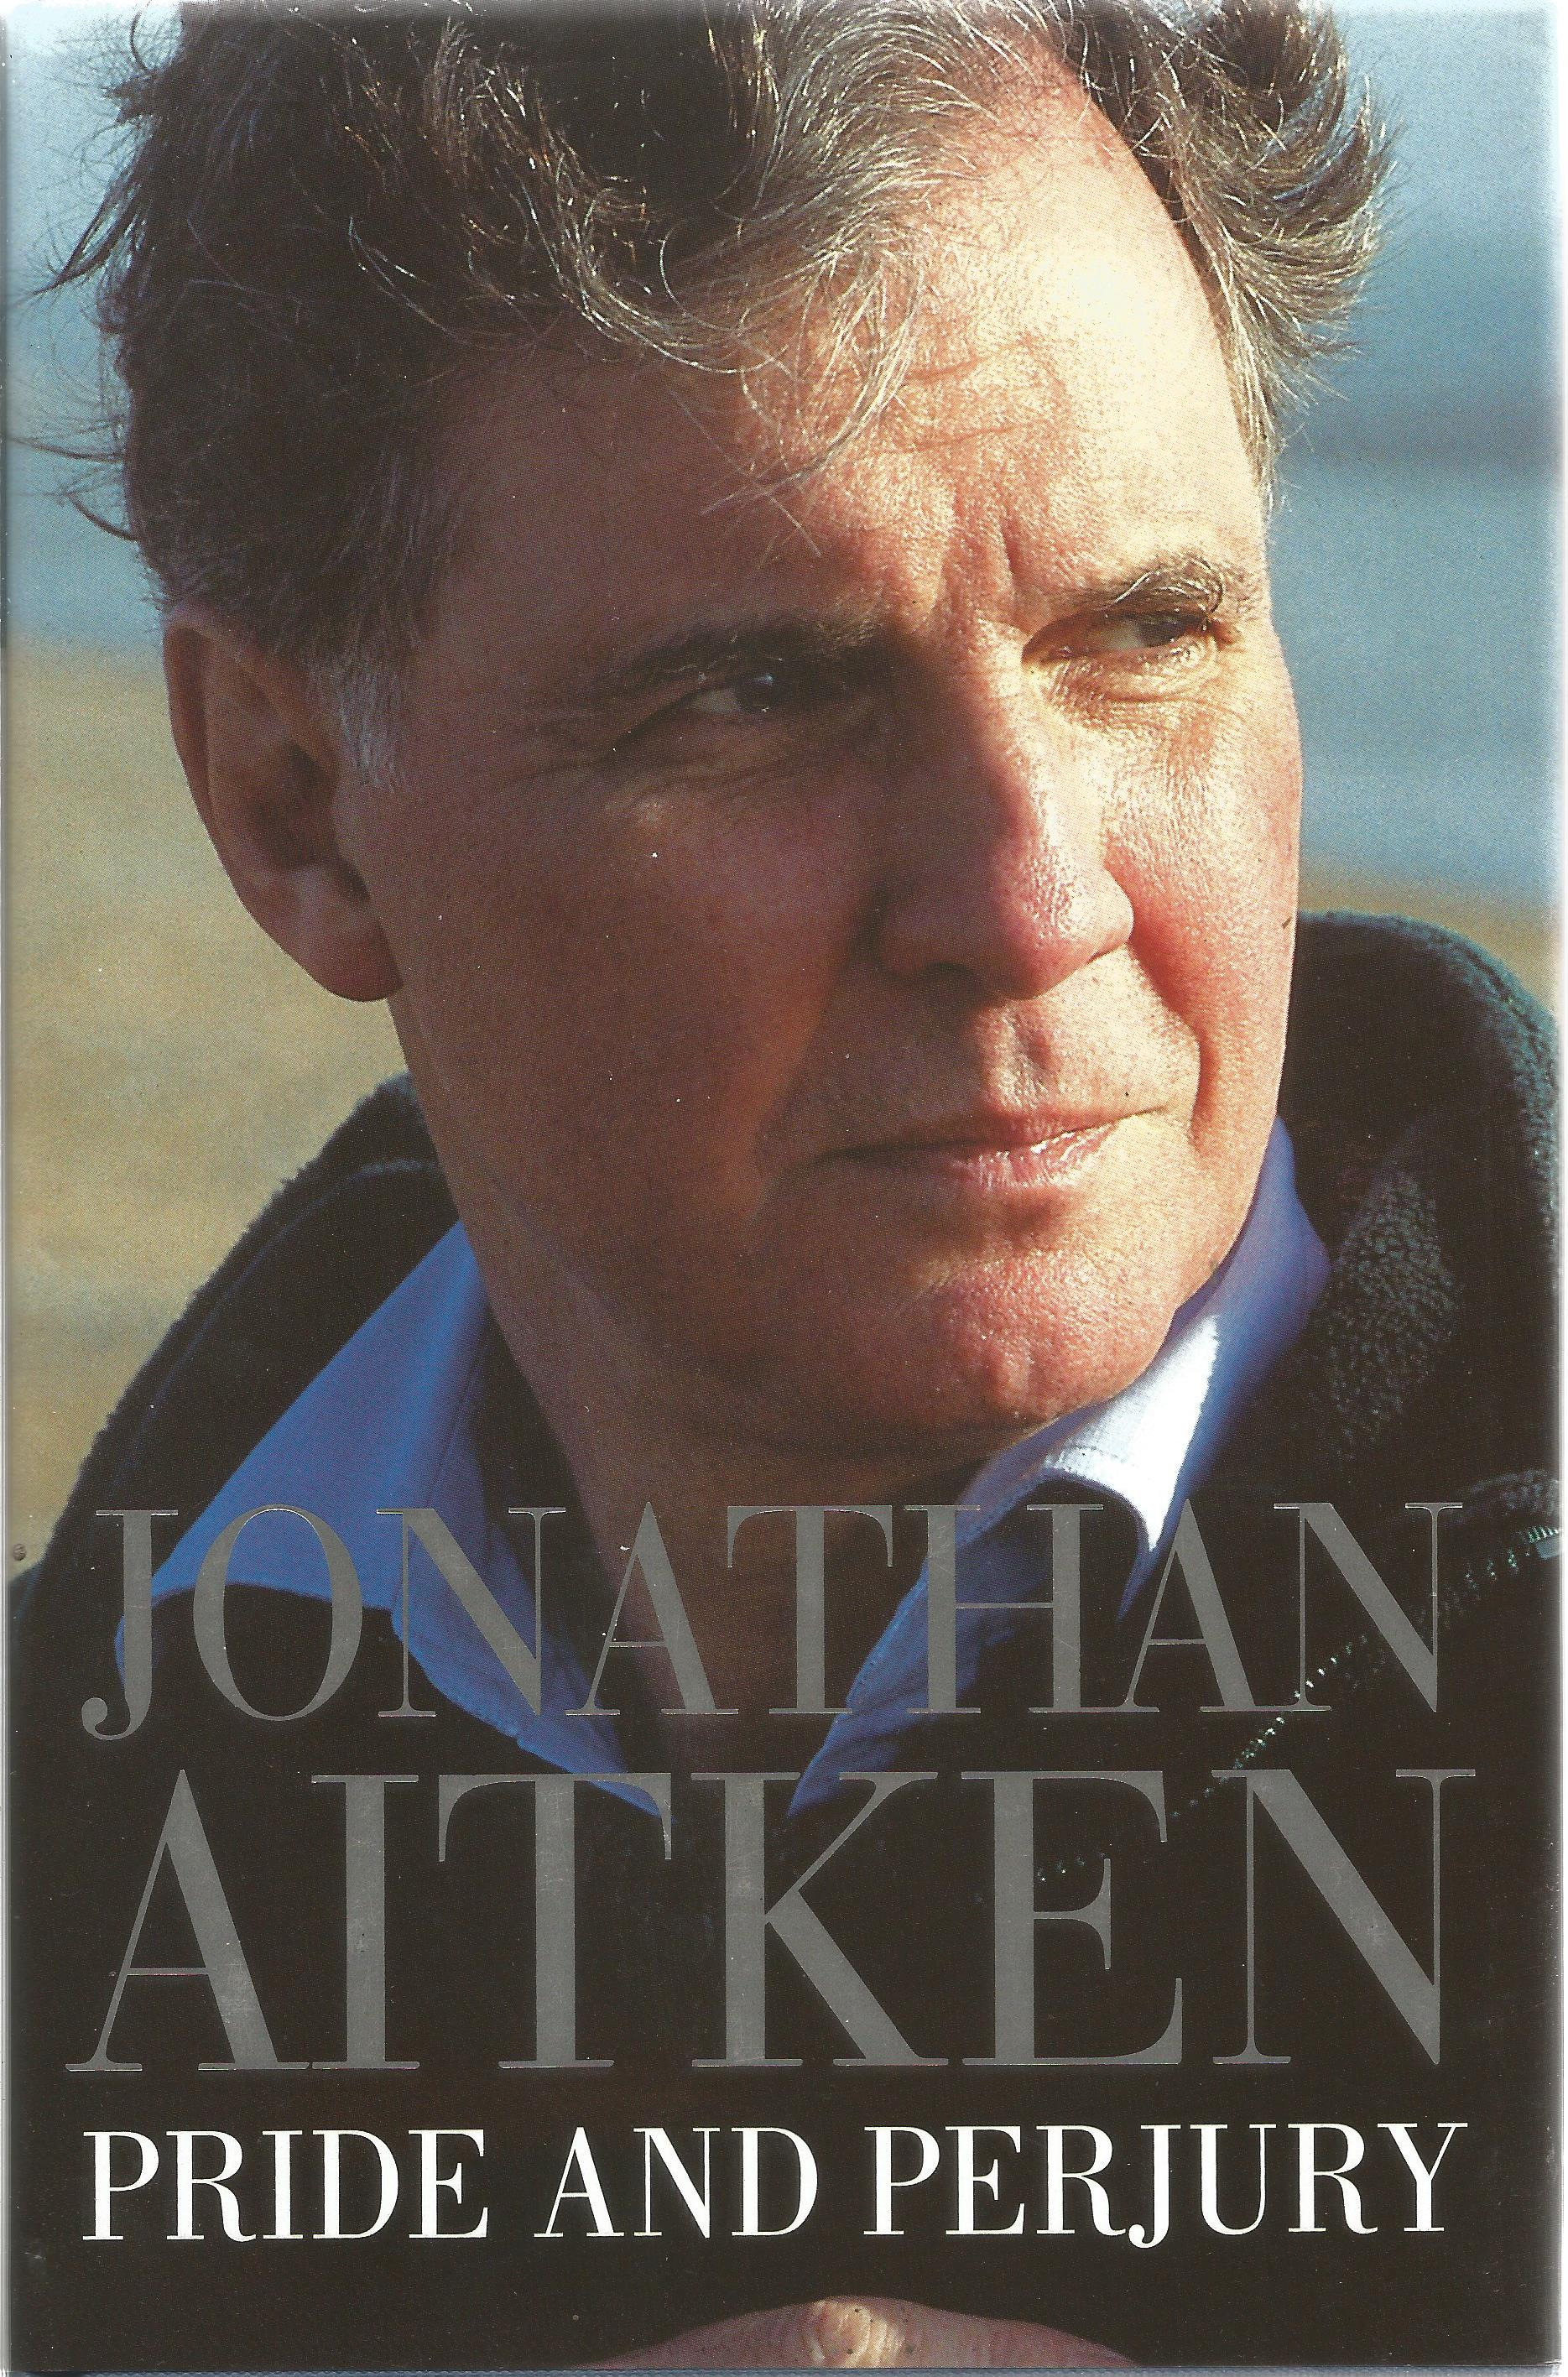 Jonathan Aitken Hardback Book Pride and Perjury signed by the Author on the First Page dust cover